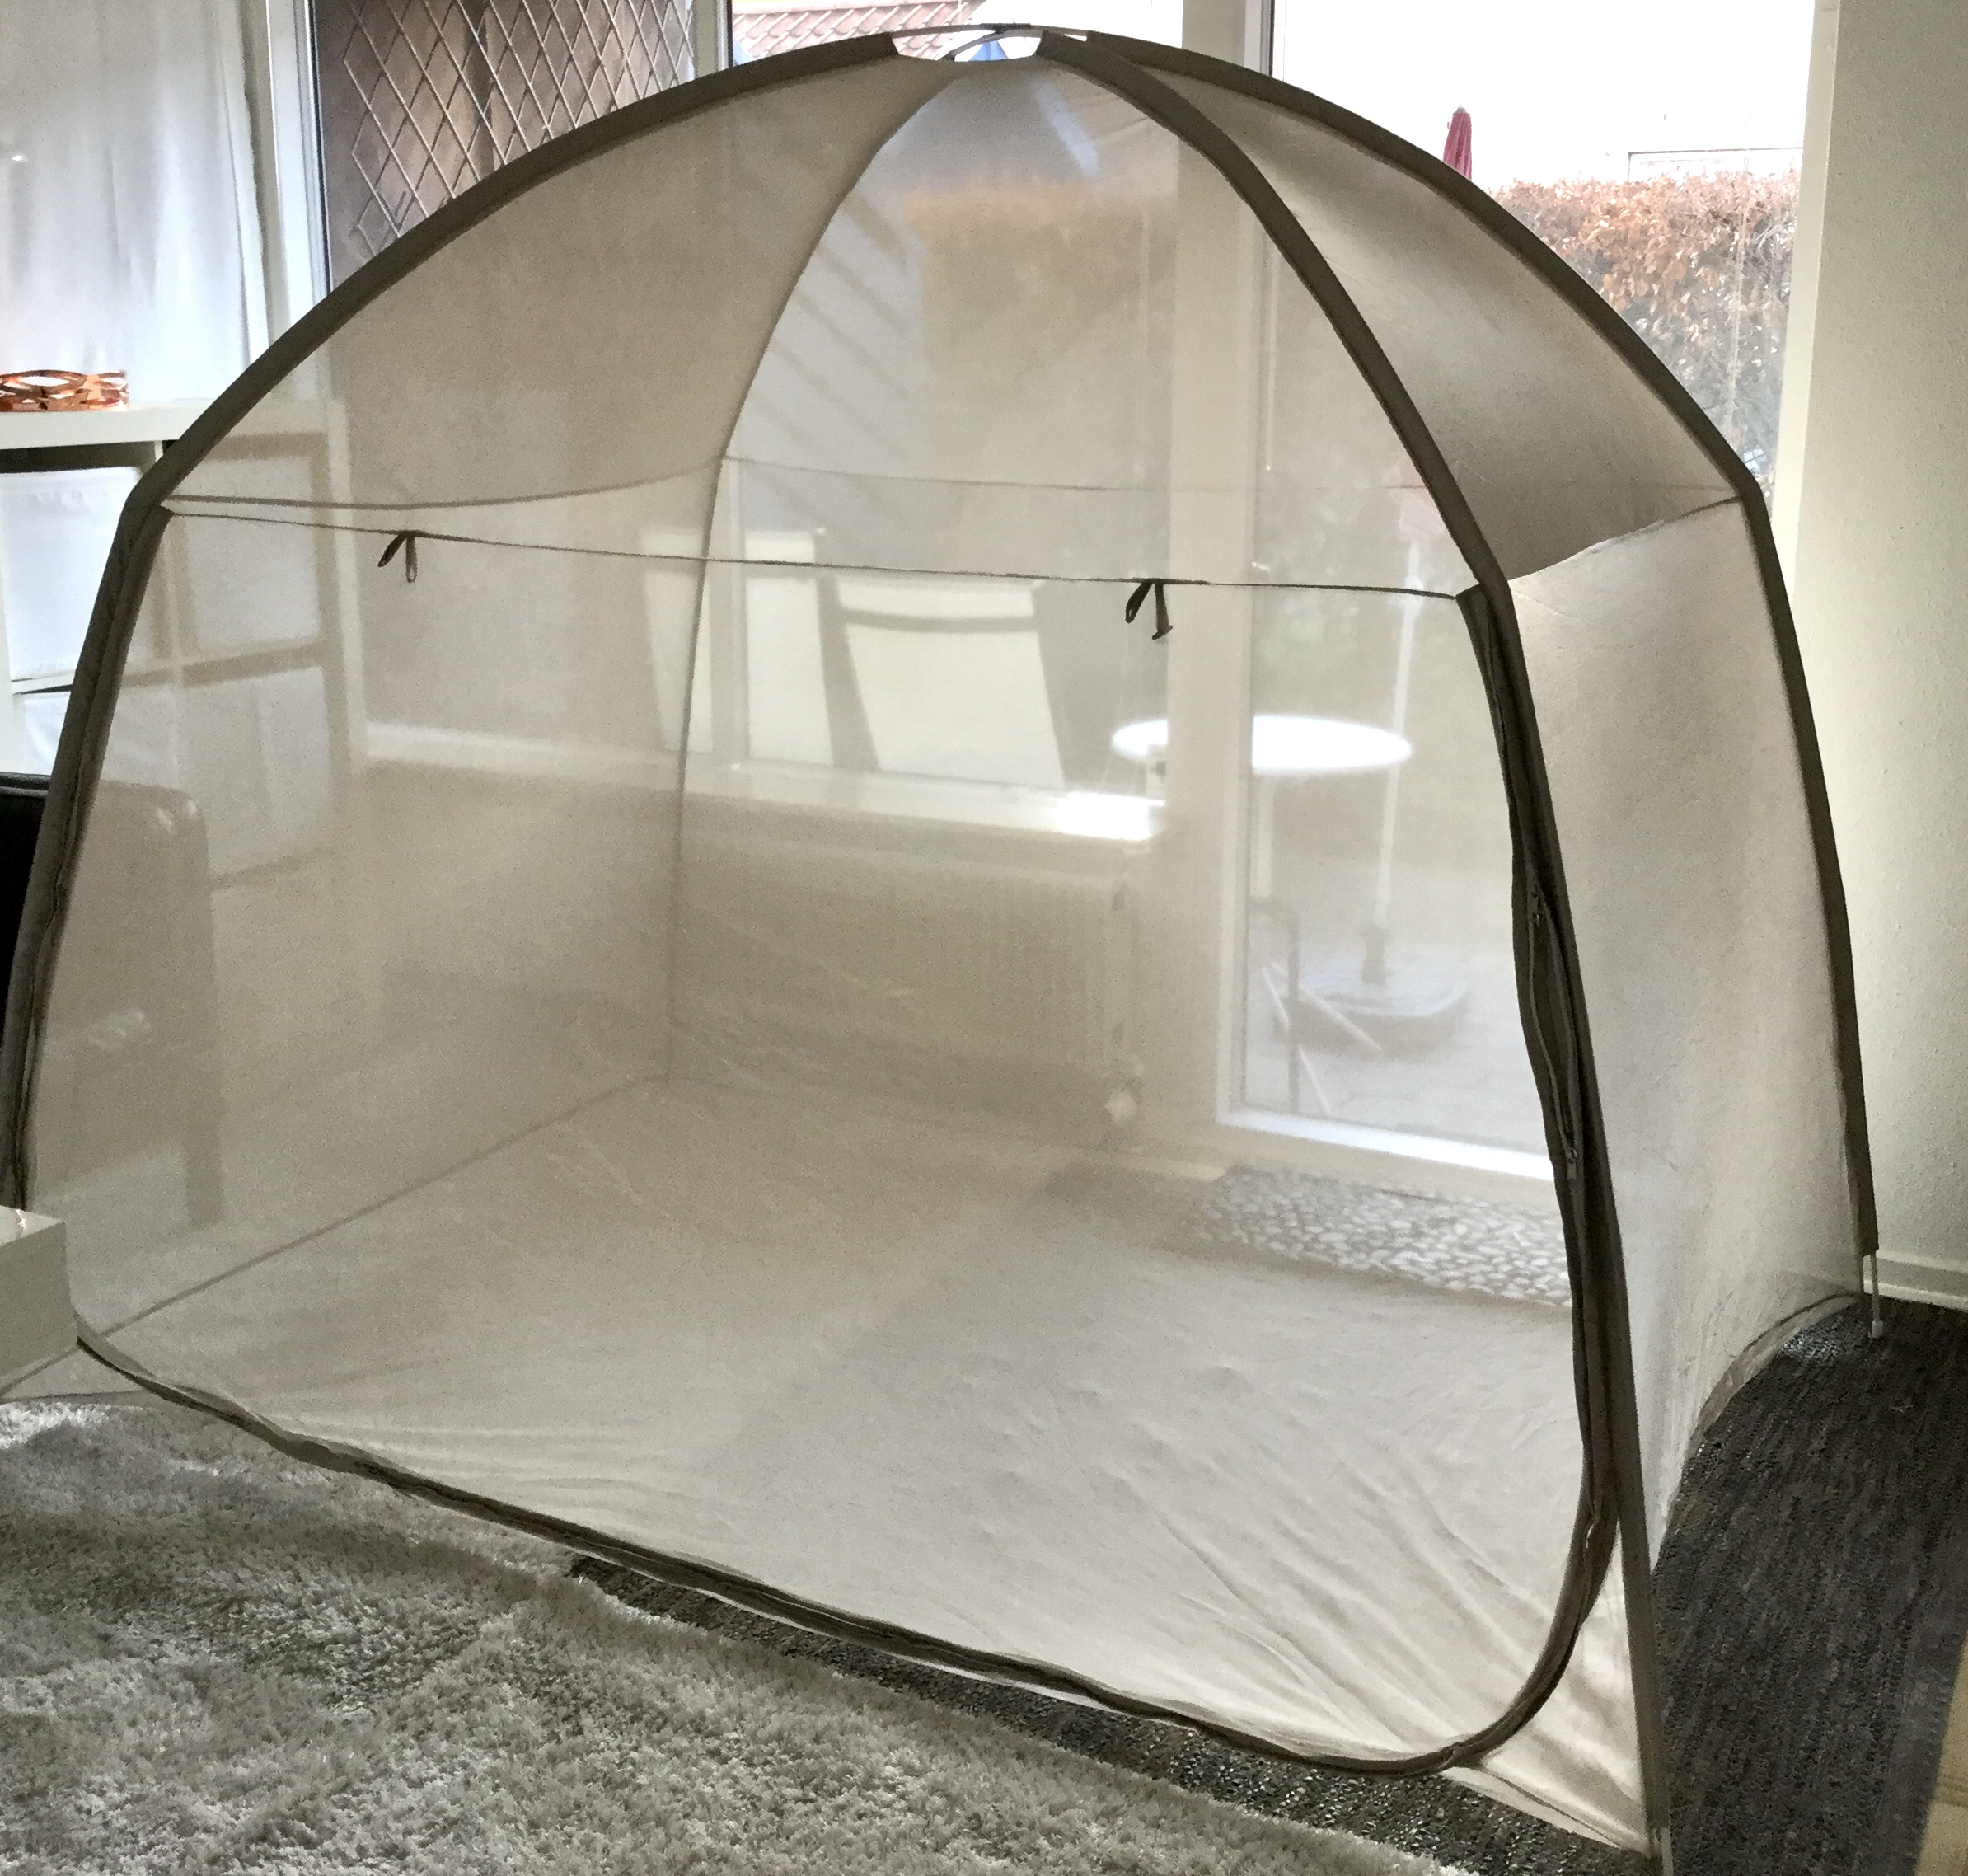 Faraday Cage Tent